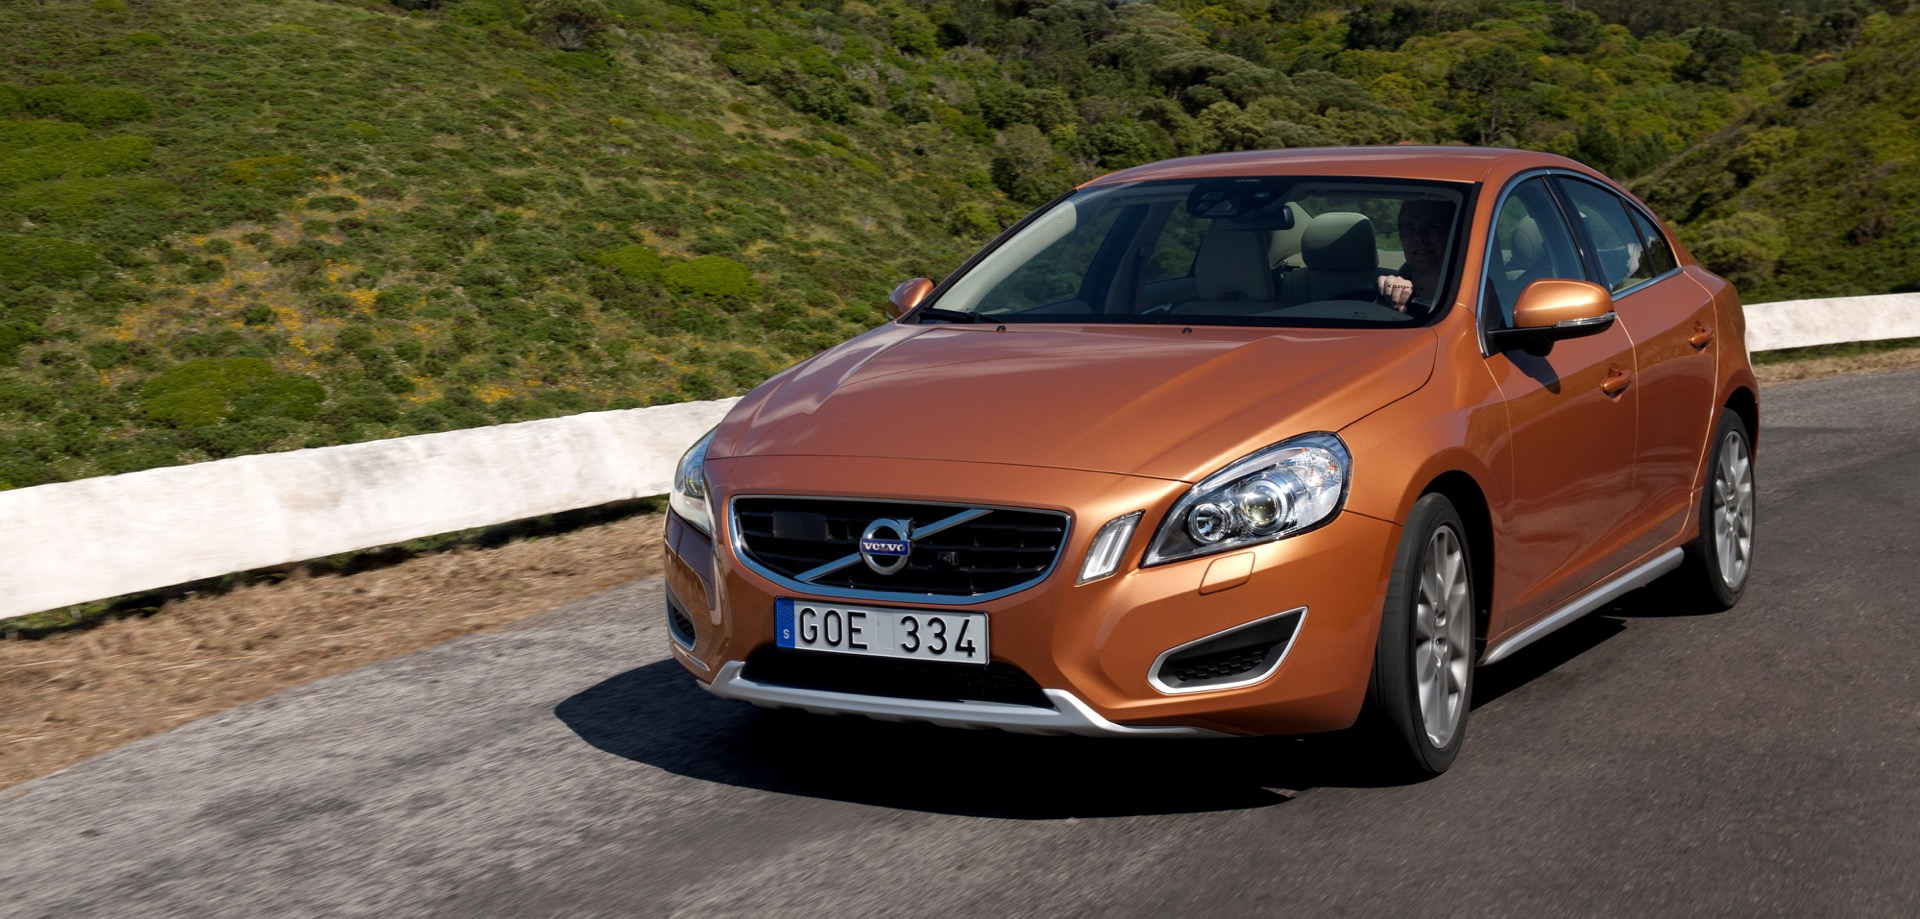 The All New Volvo S60 On The Road In The Region Of Sintra Portugal02 -  Volvo